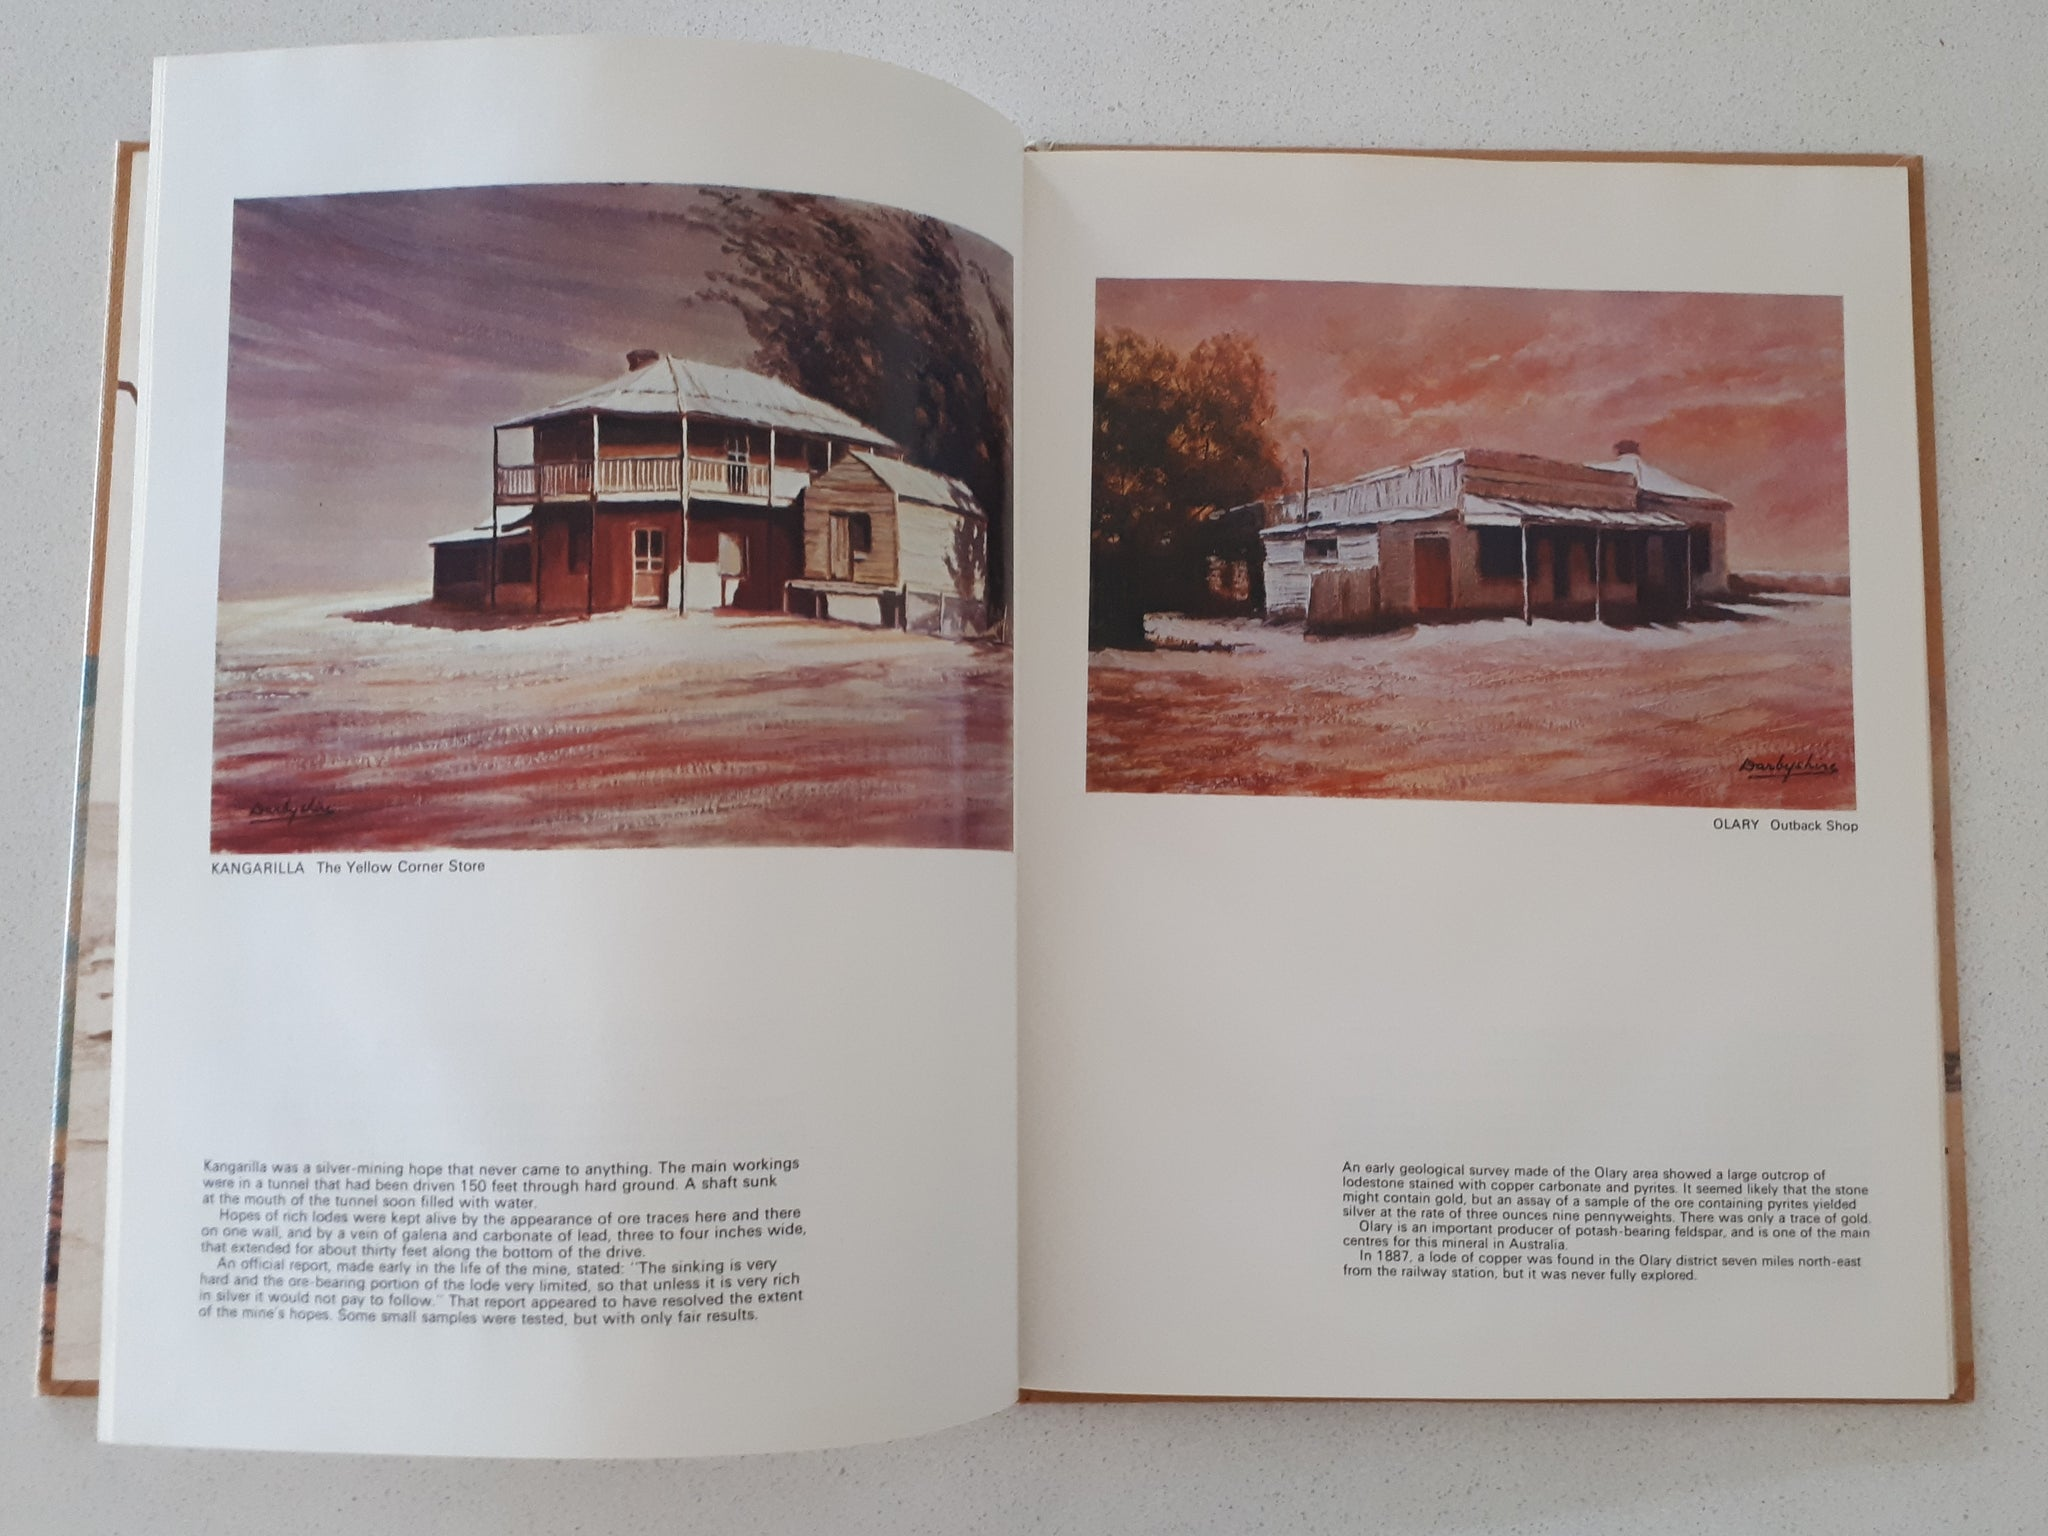 Old Mining Towns of South Australia by John Darbyshire